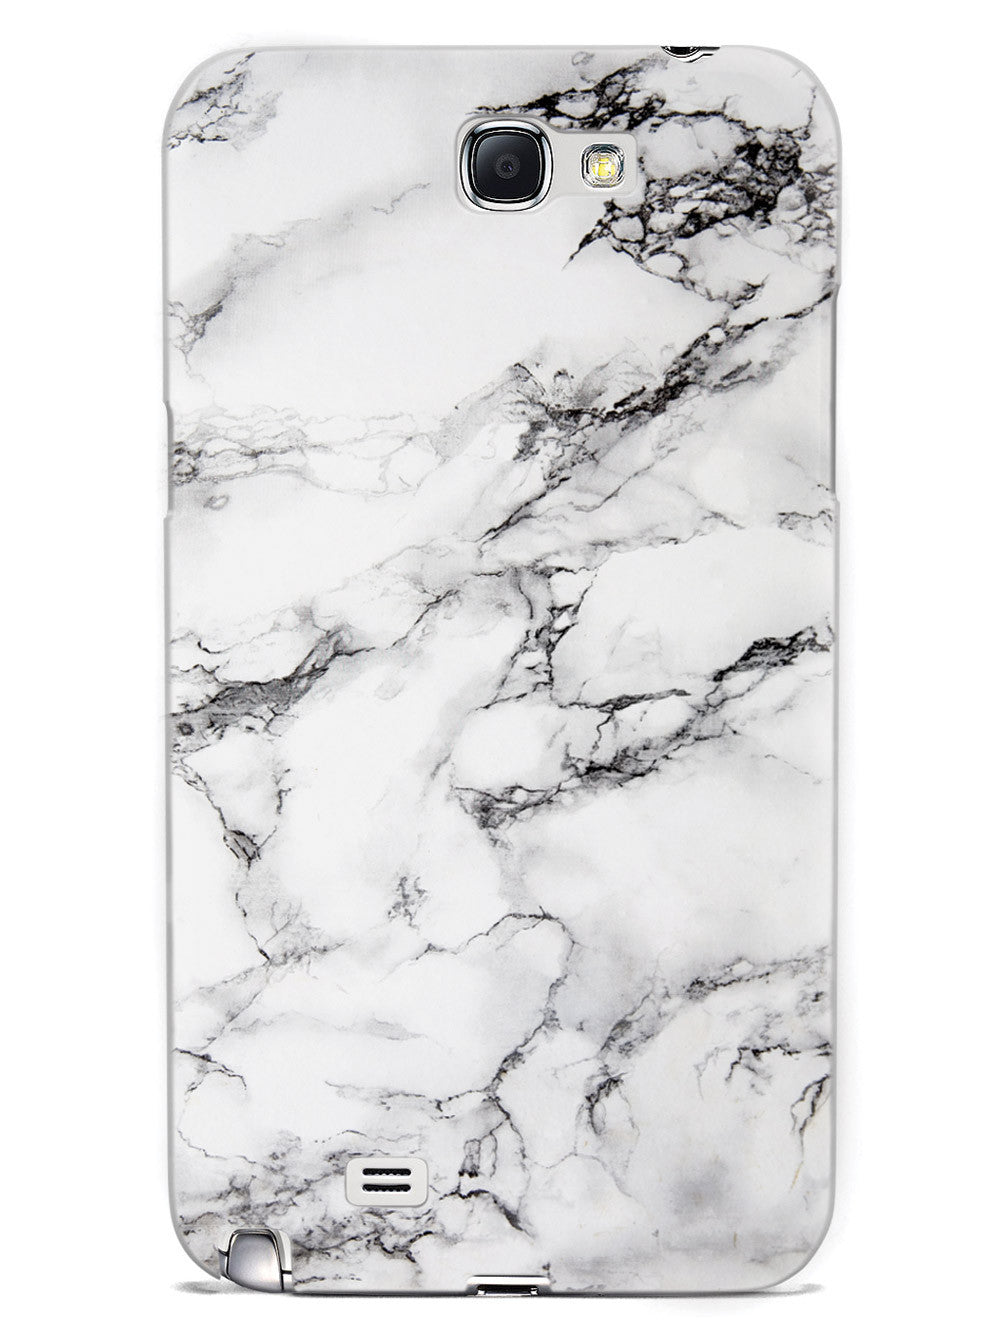 Textured Marble - Black & White Case